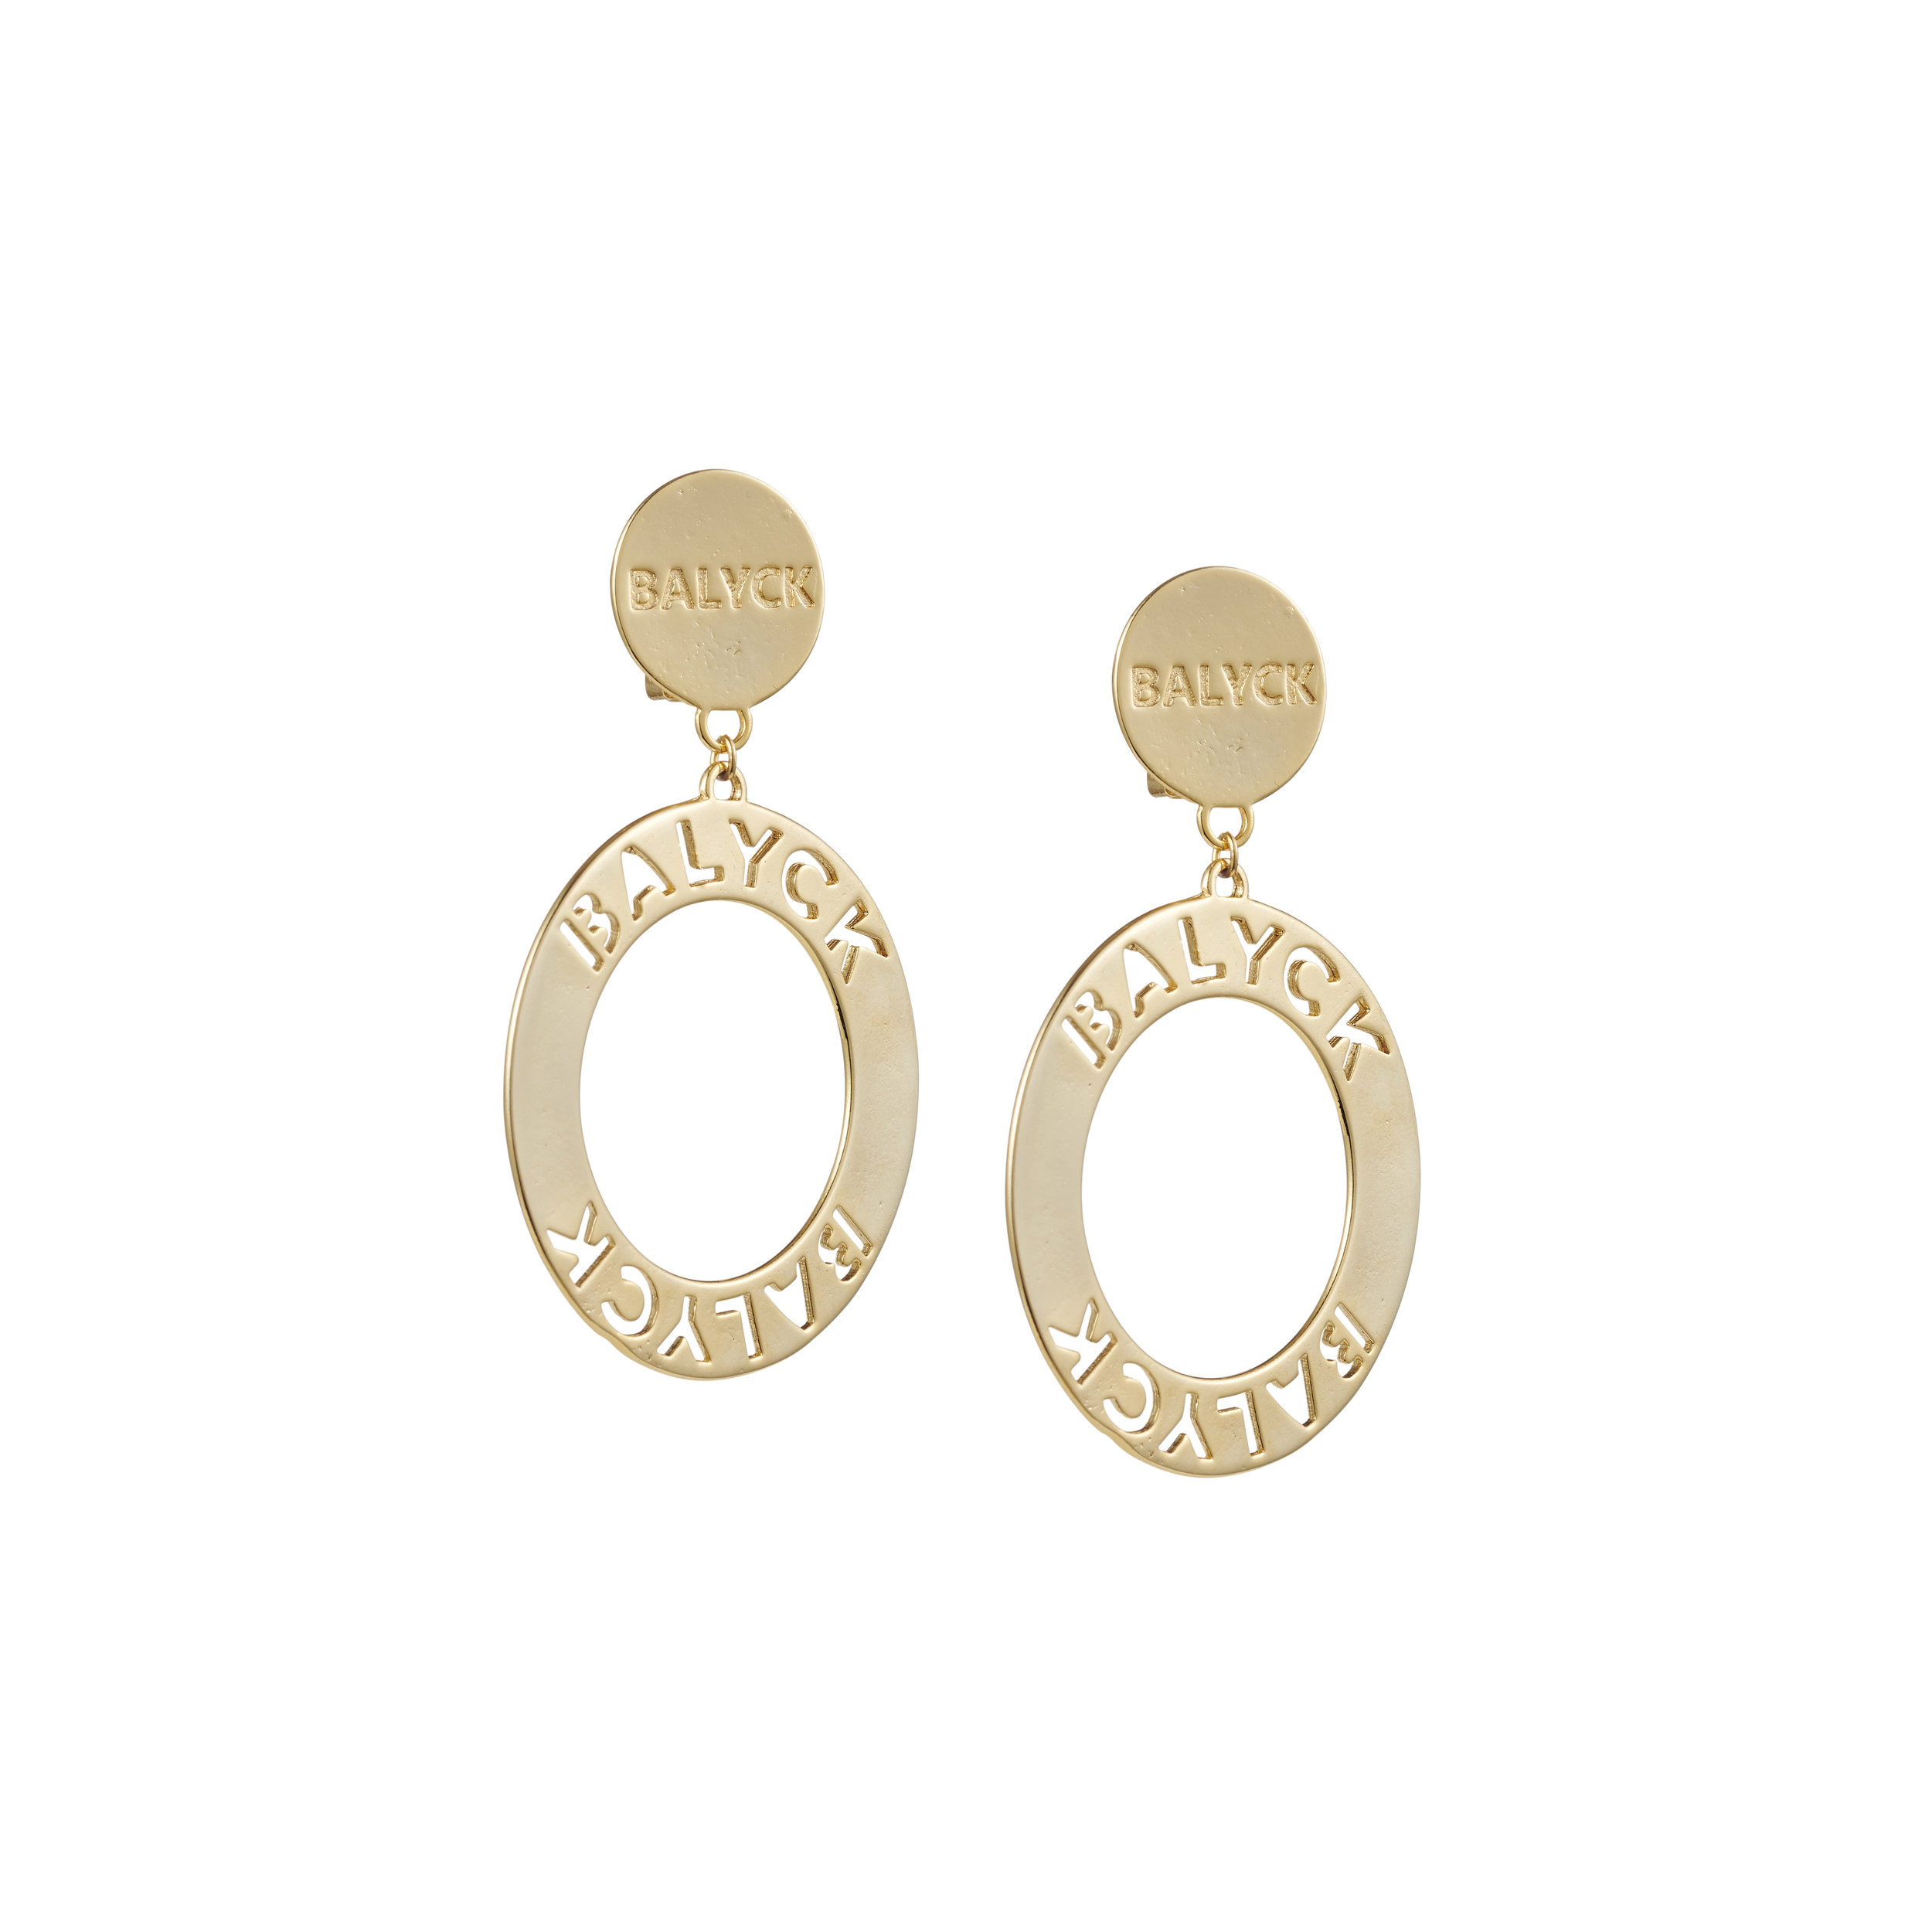 balyck logo earrings - $290.00 AUD